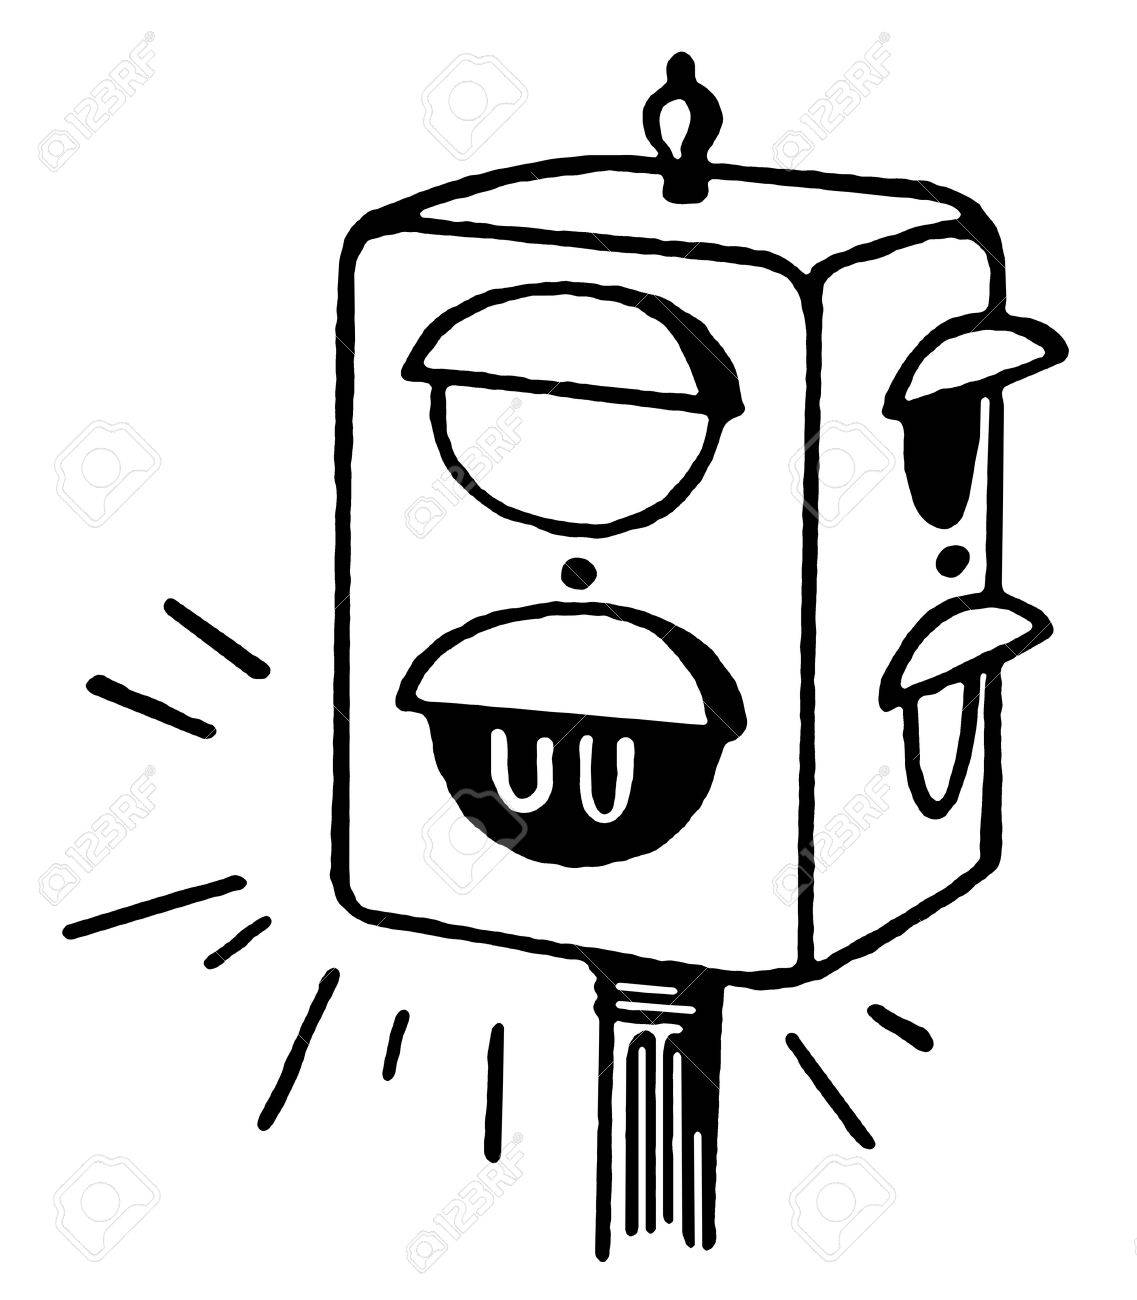 light clipart black and white. a black and white version of set traffic lights stock photo 14917253 light clipart